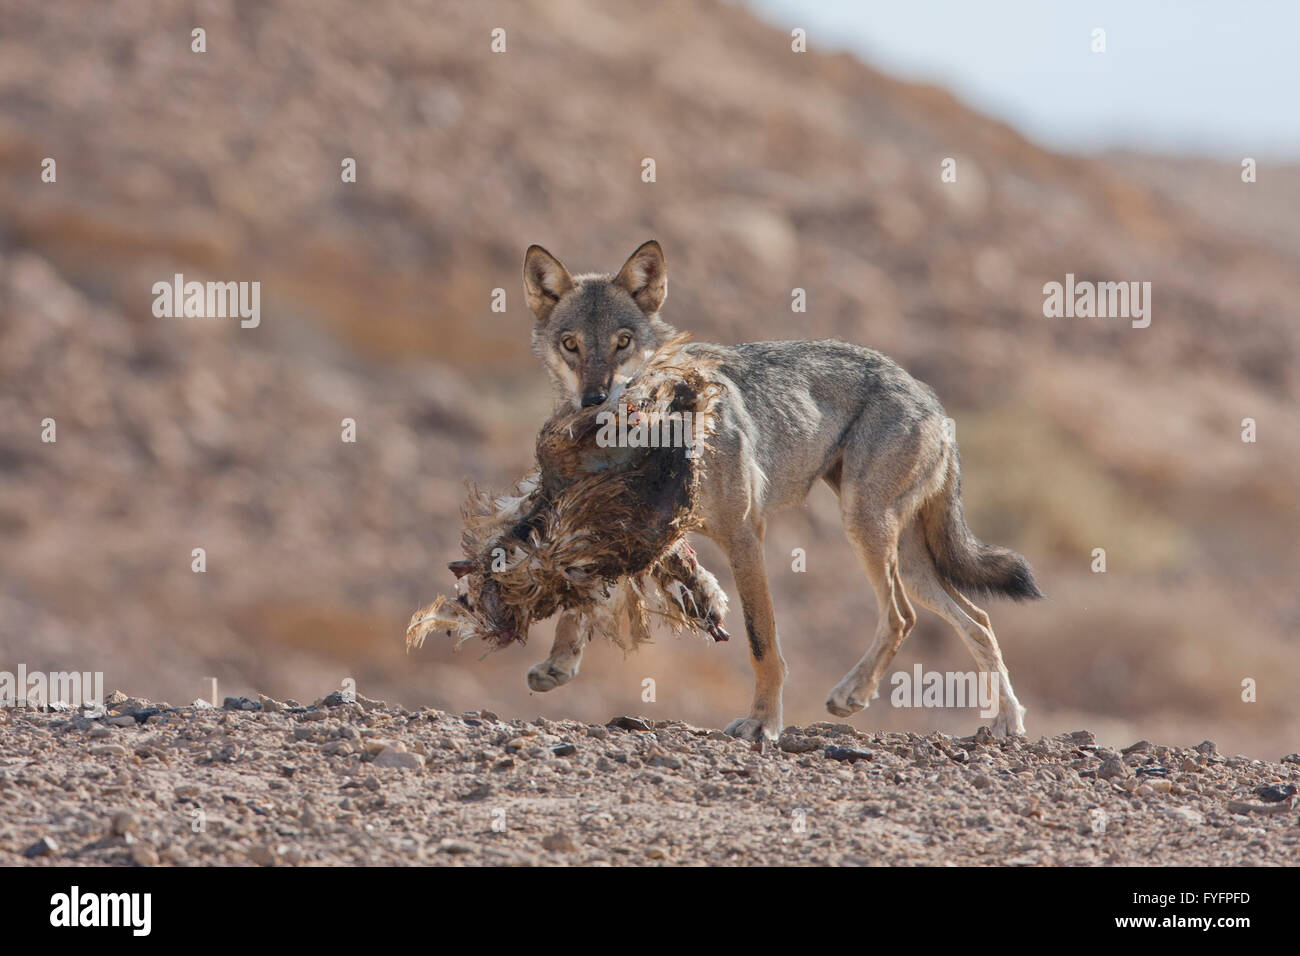 Arabian wolf (aka desert wolf Canis lupus arabs). with prey. This wolf is  subspecies of gray wolf. Photographed - Stock Image